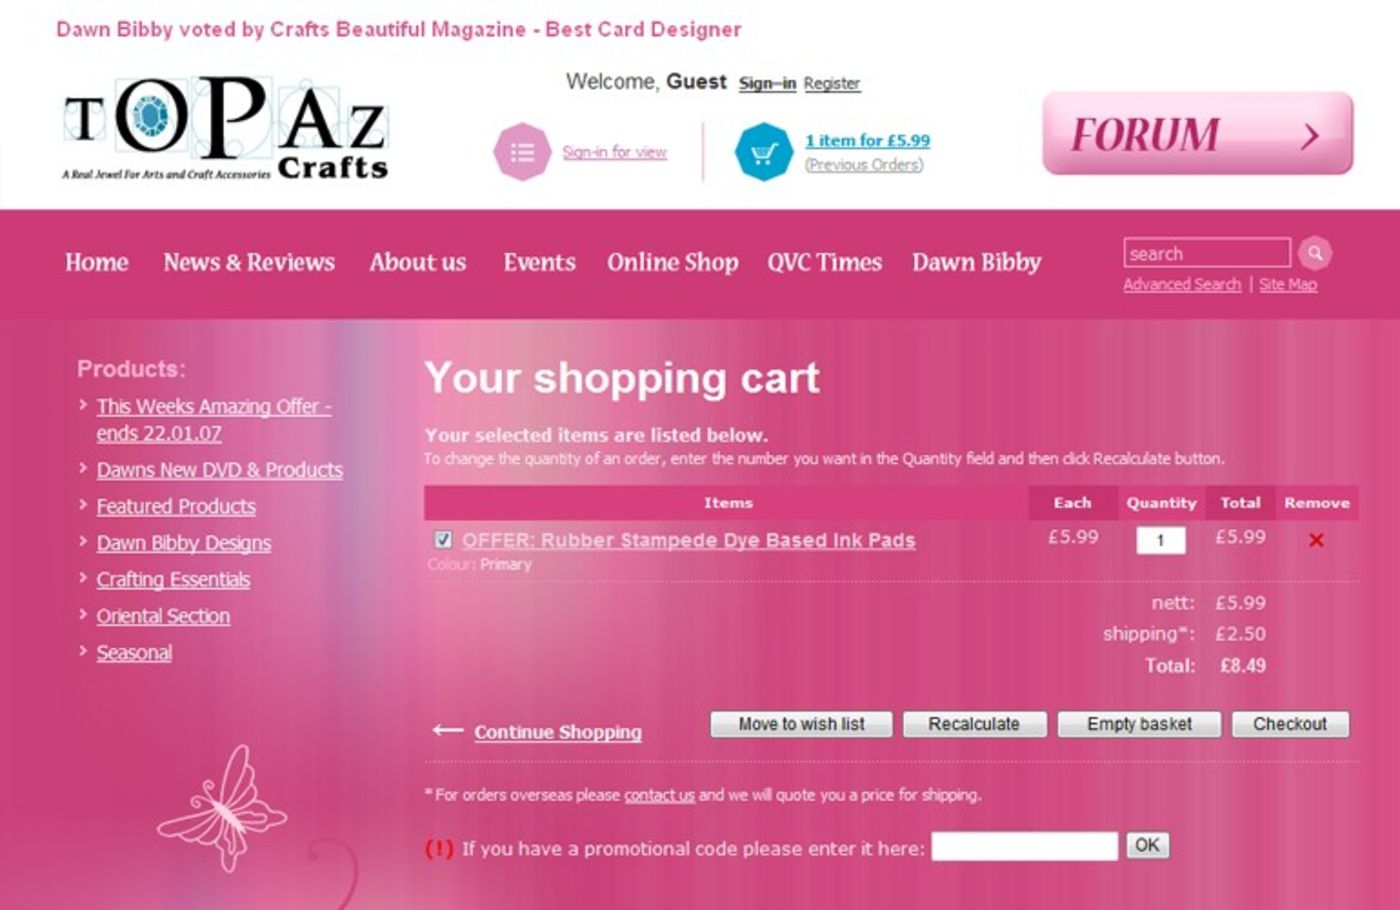 Topaz Crafts Shopping cart